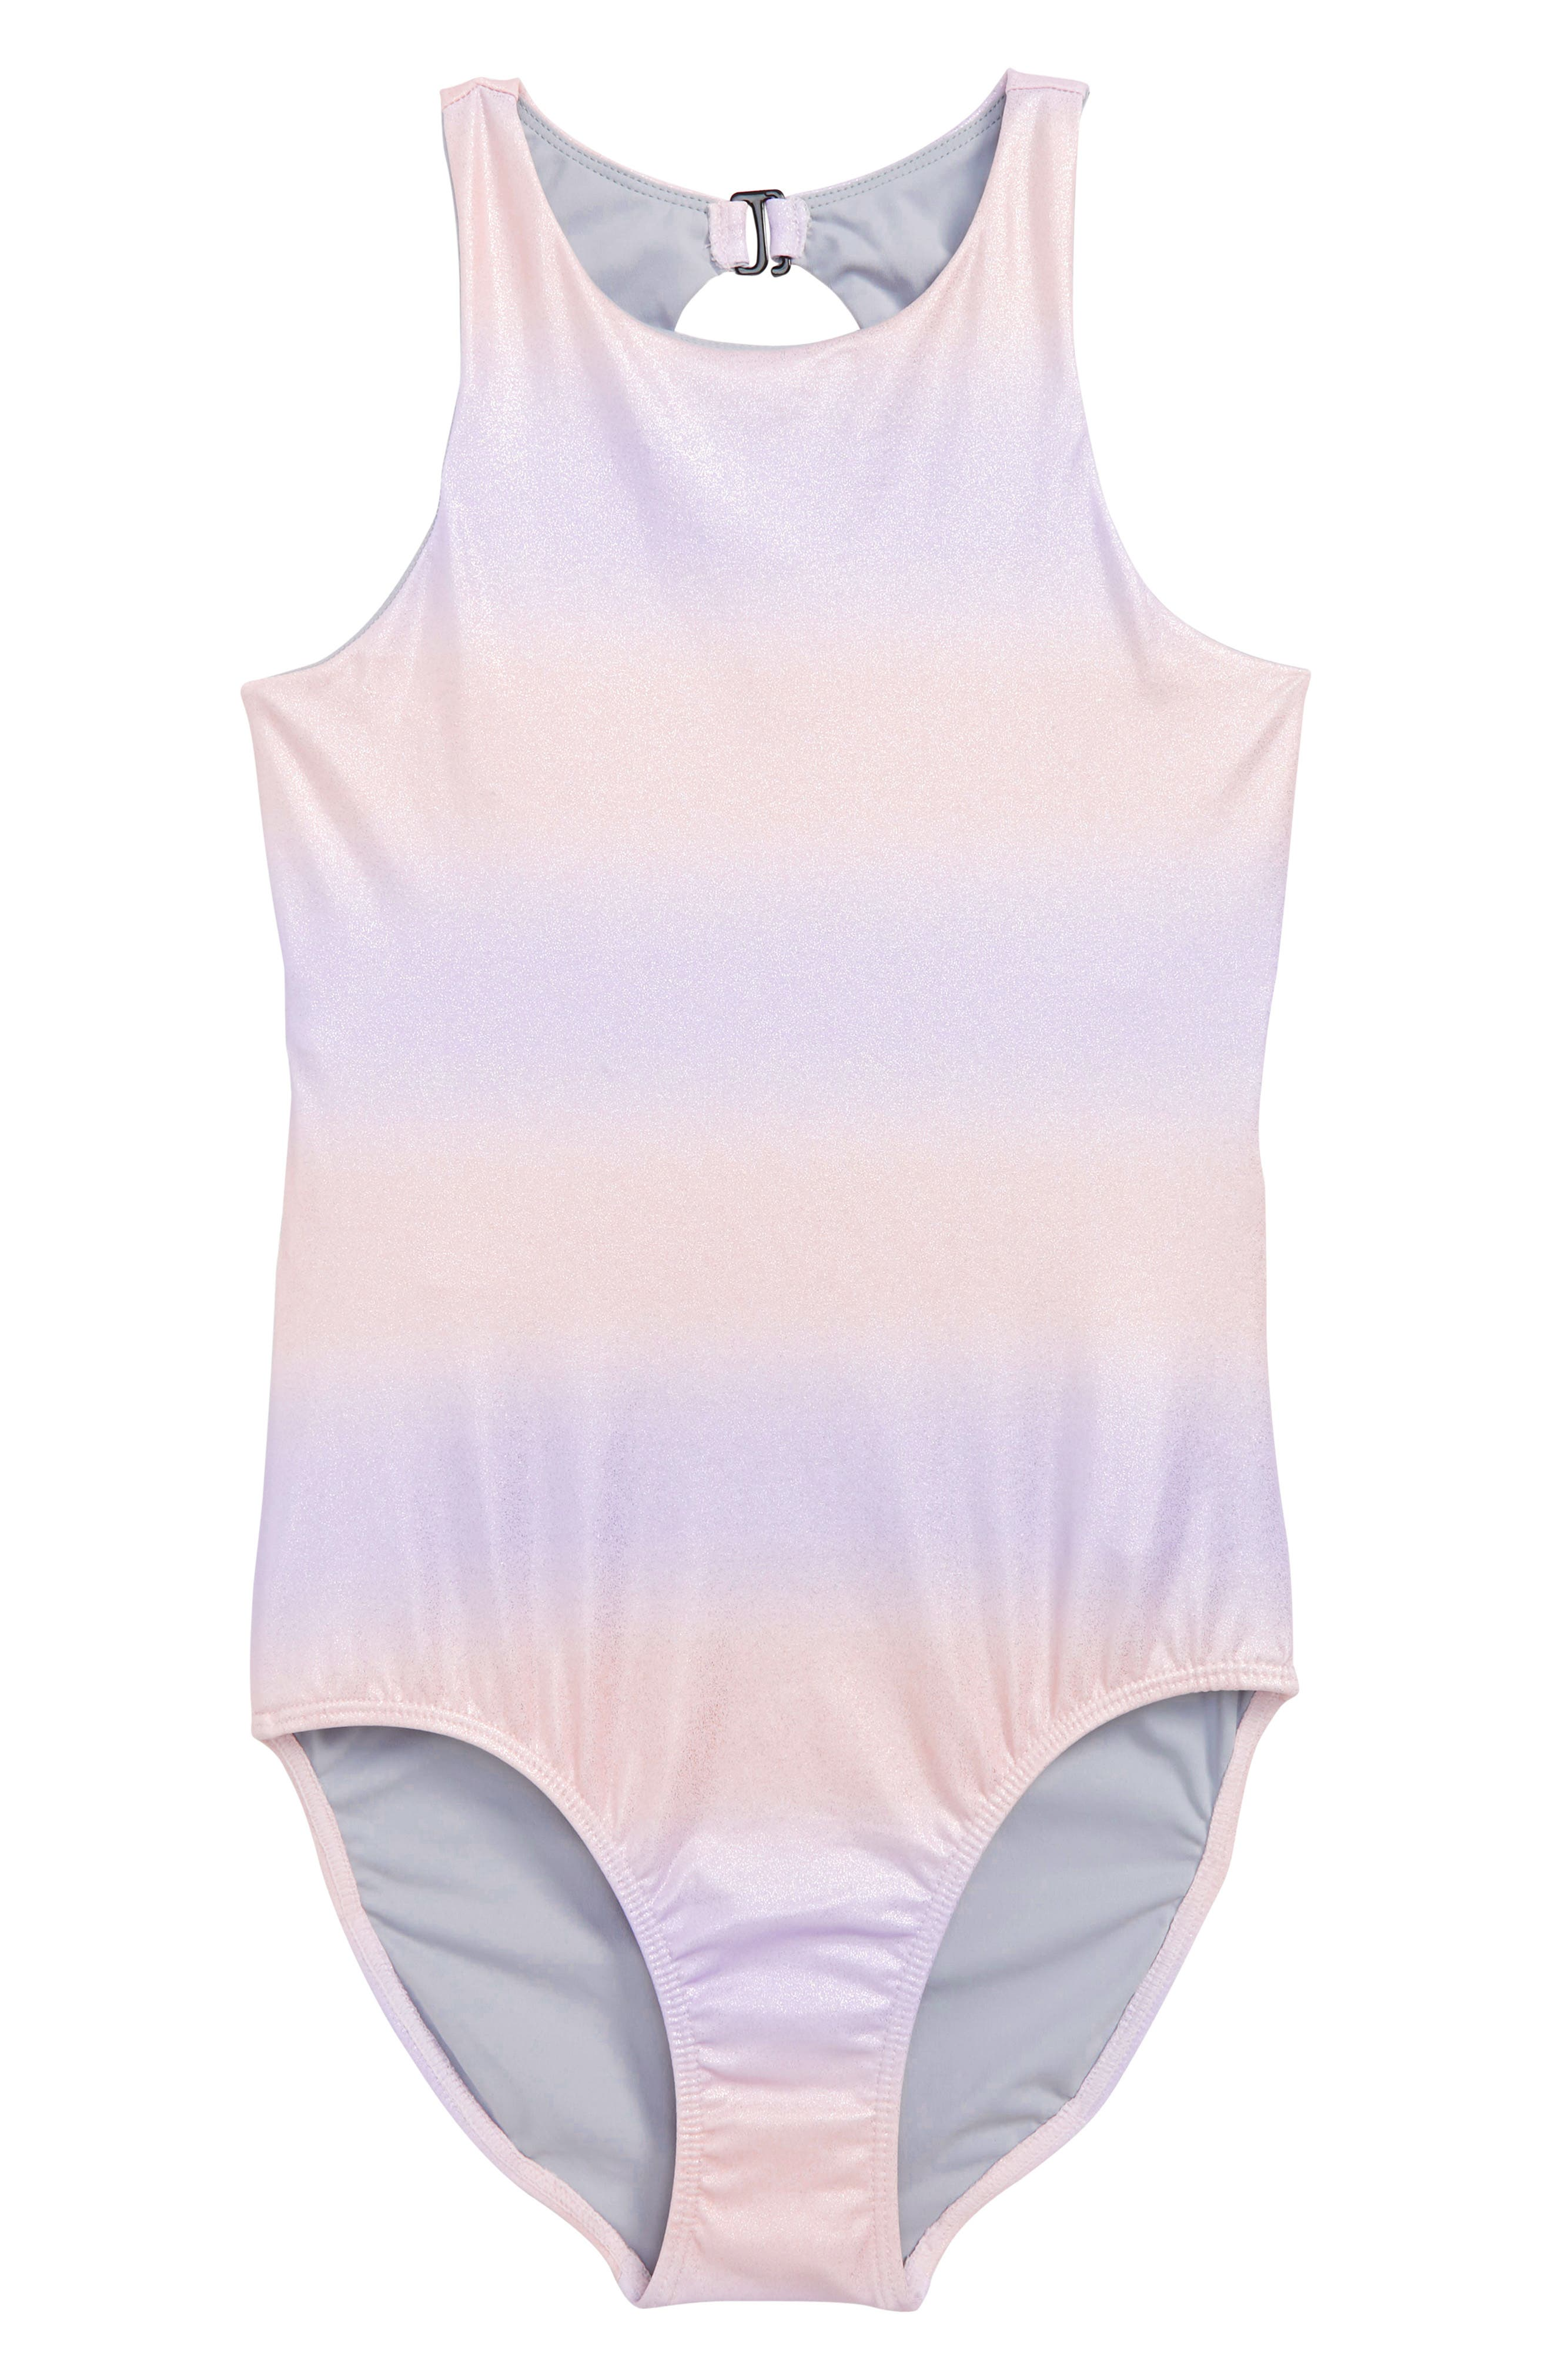 Ladder Back One-Piece Swimsuit,                             Main thumbnail 1, color,                             Pink Sunset Metallic